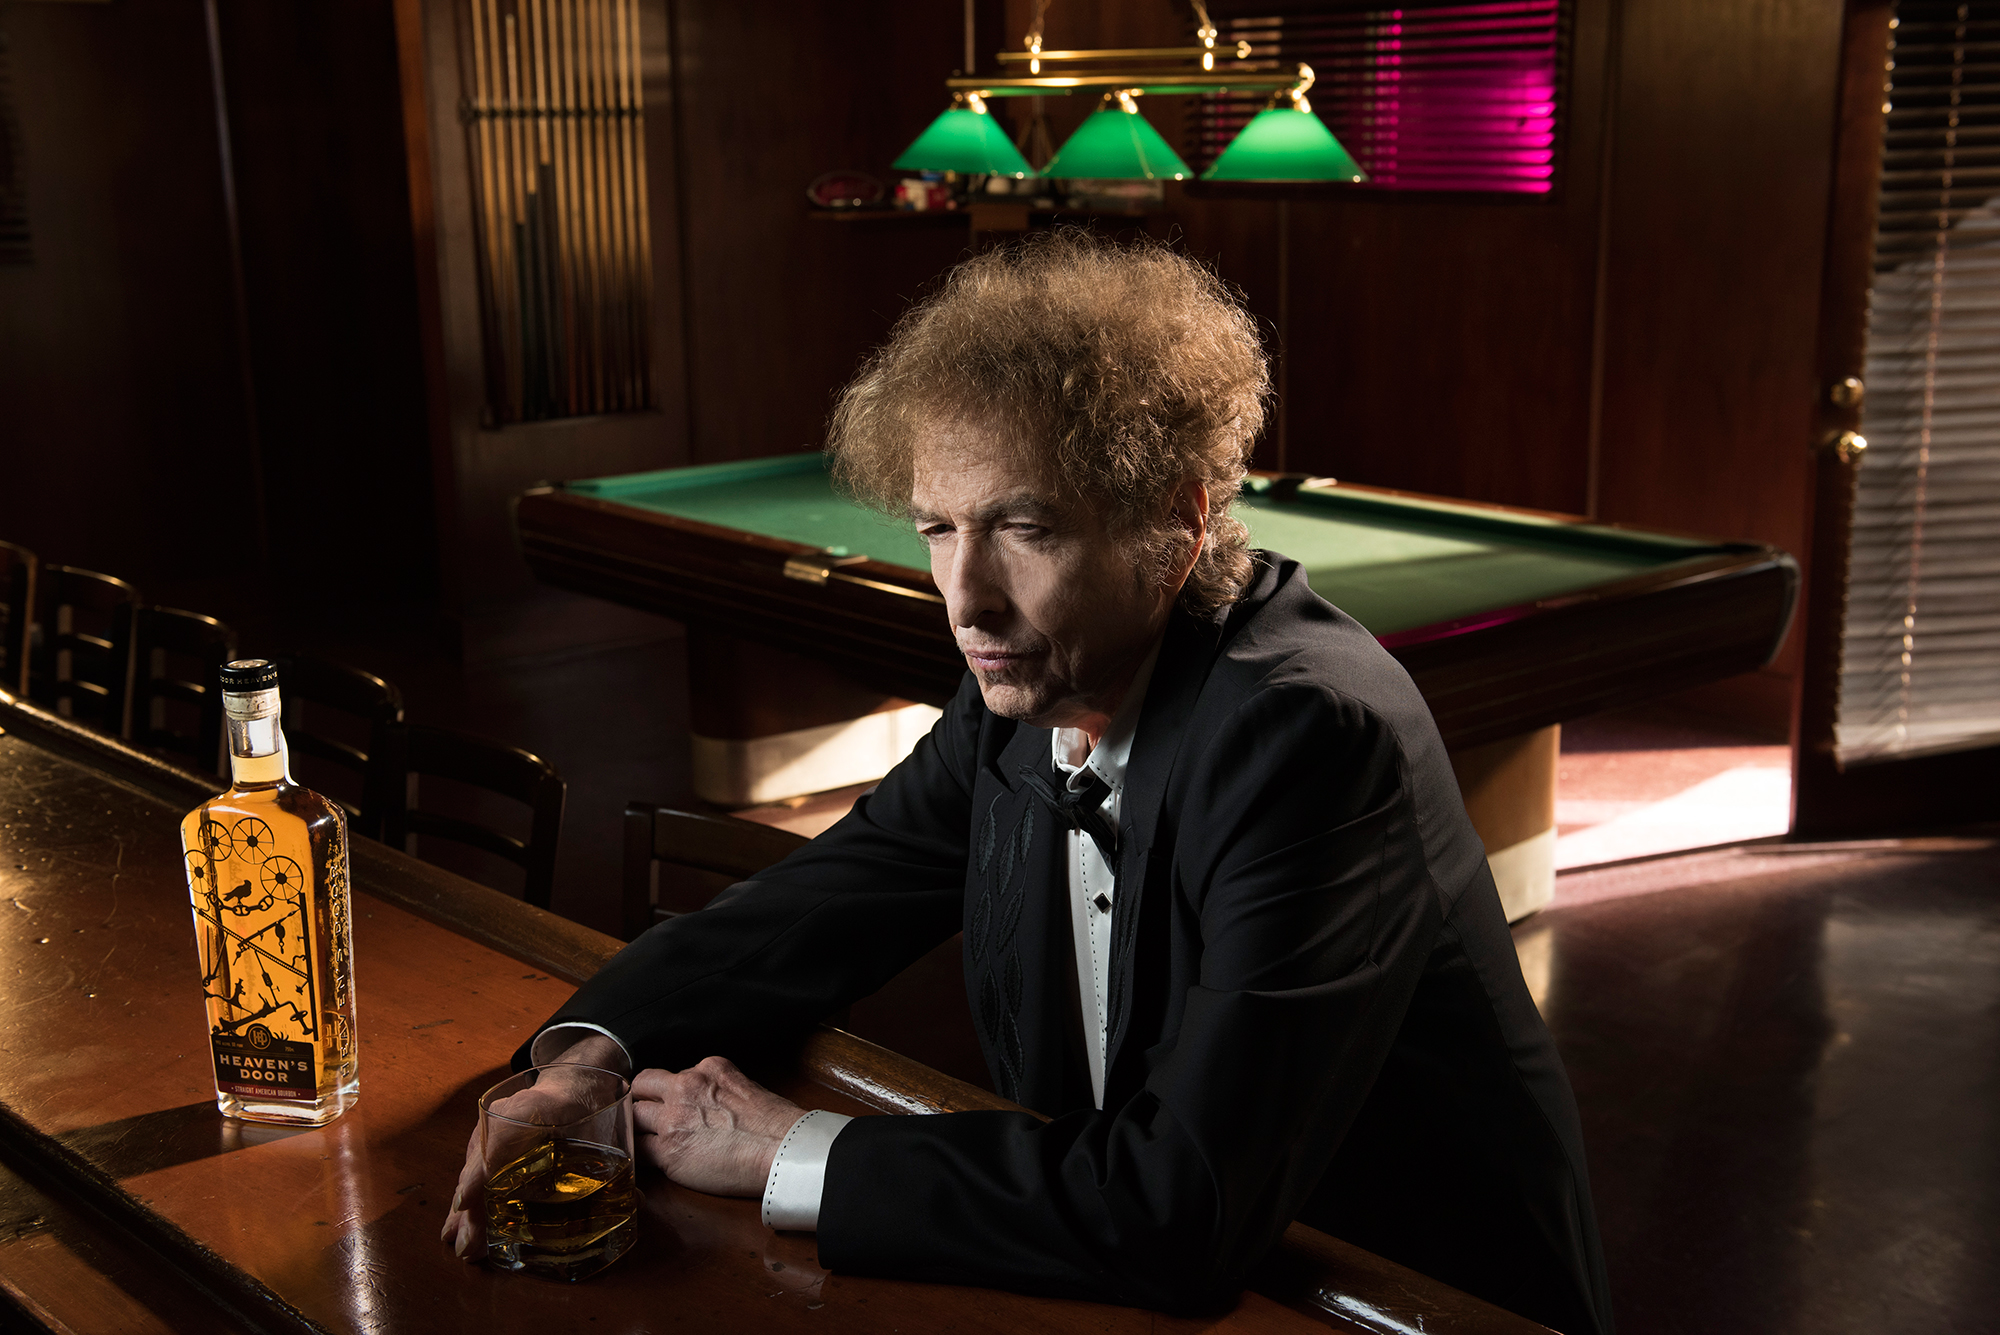 Bob Dylan Tour Dates 2020 Bob Dylan to Open Whiskey Distillery in Nashville in 2020